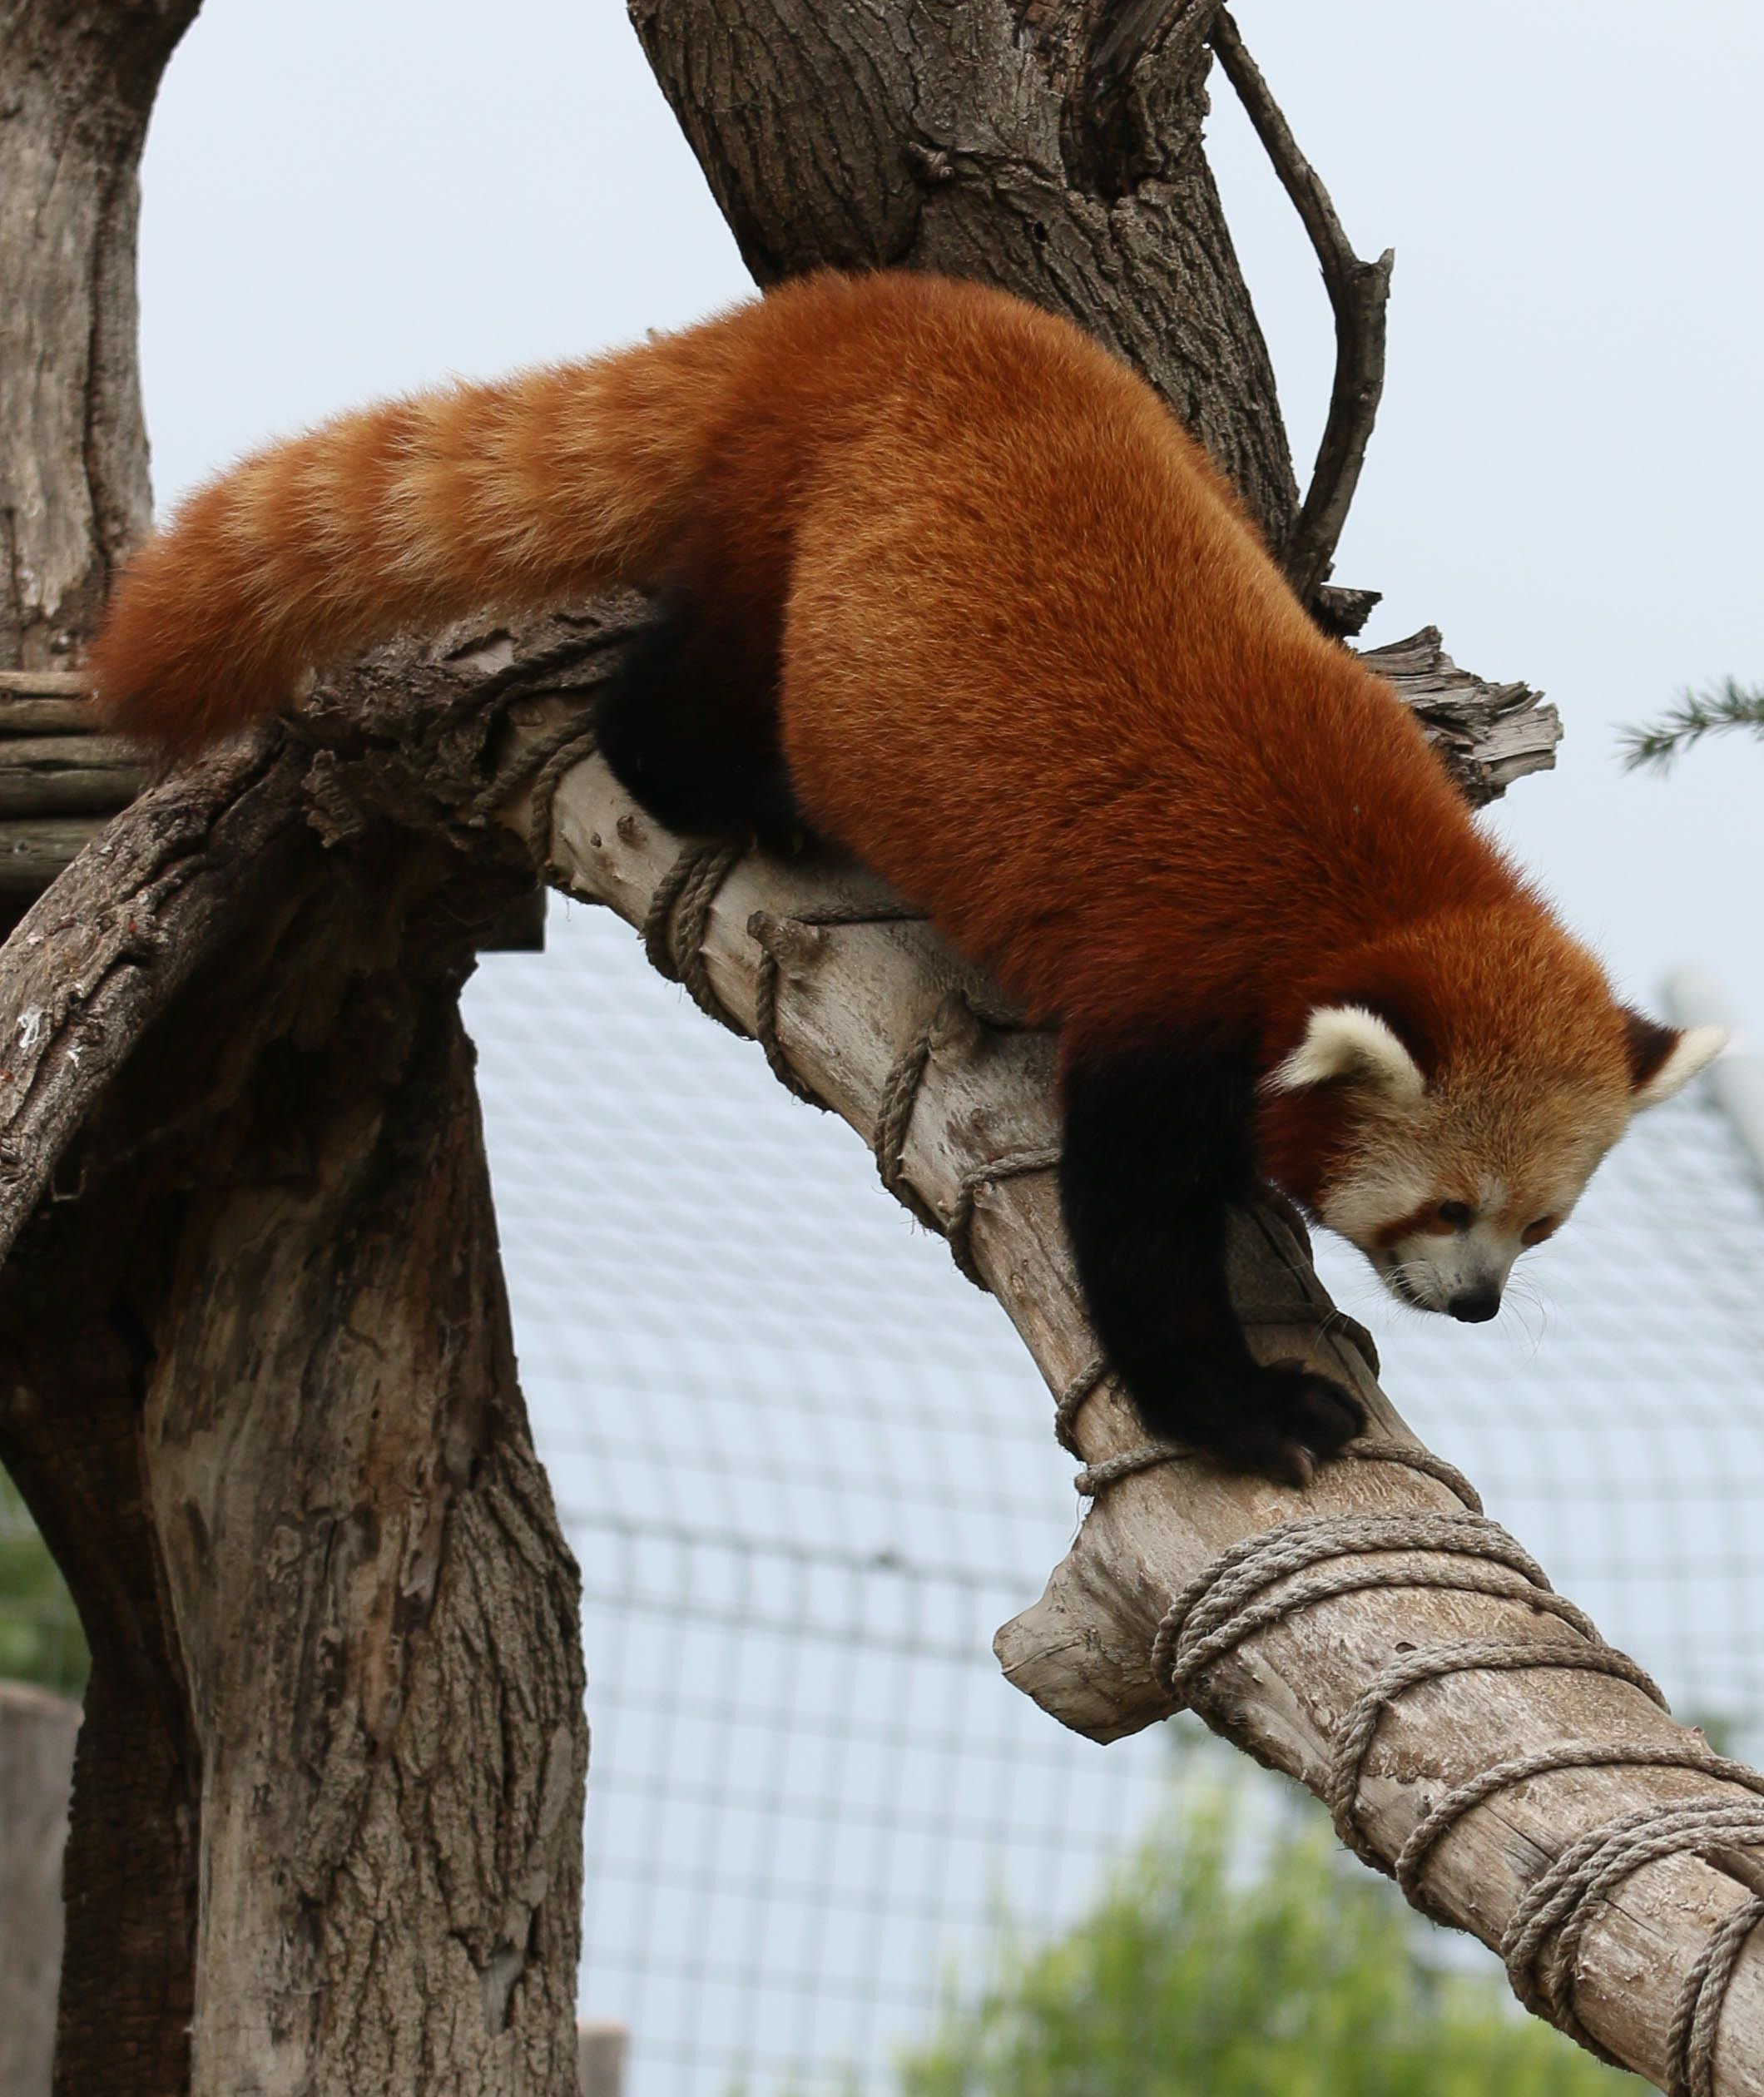 Did you know all pandas climb down trees head first the